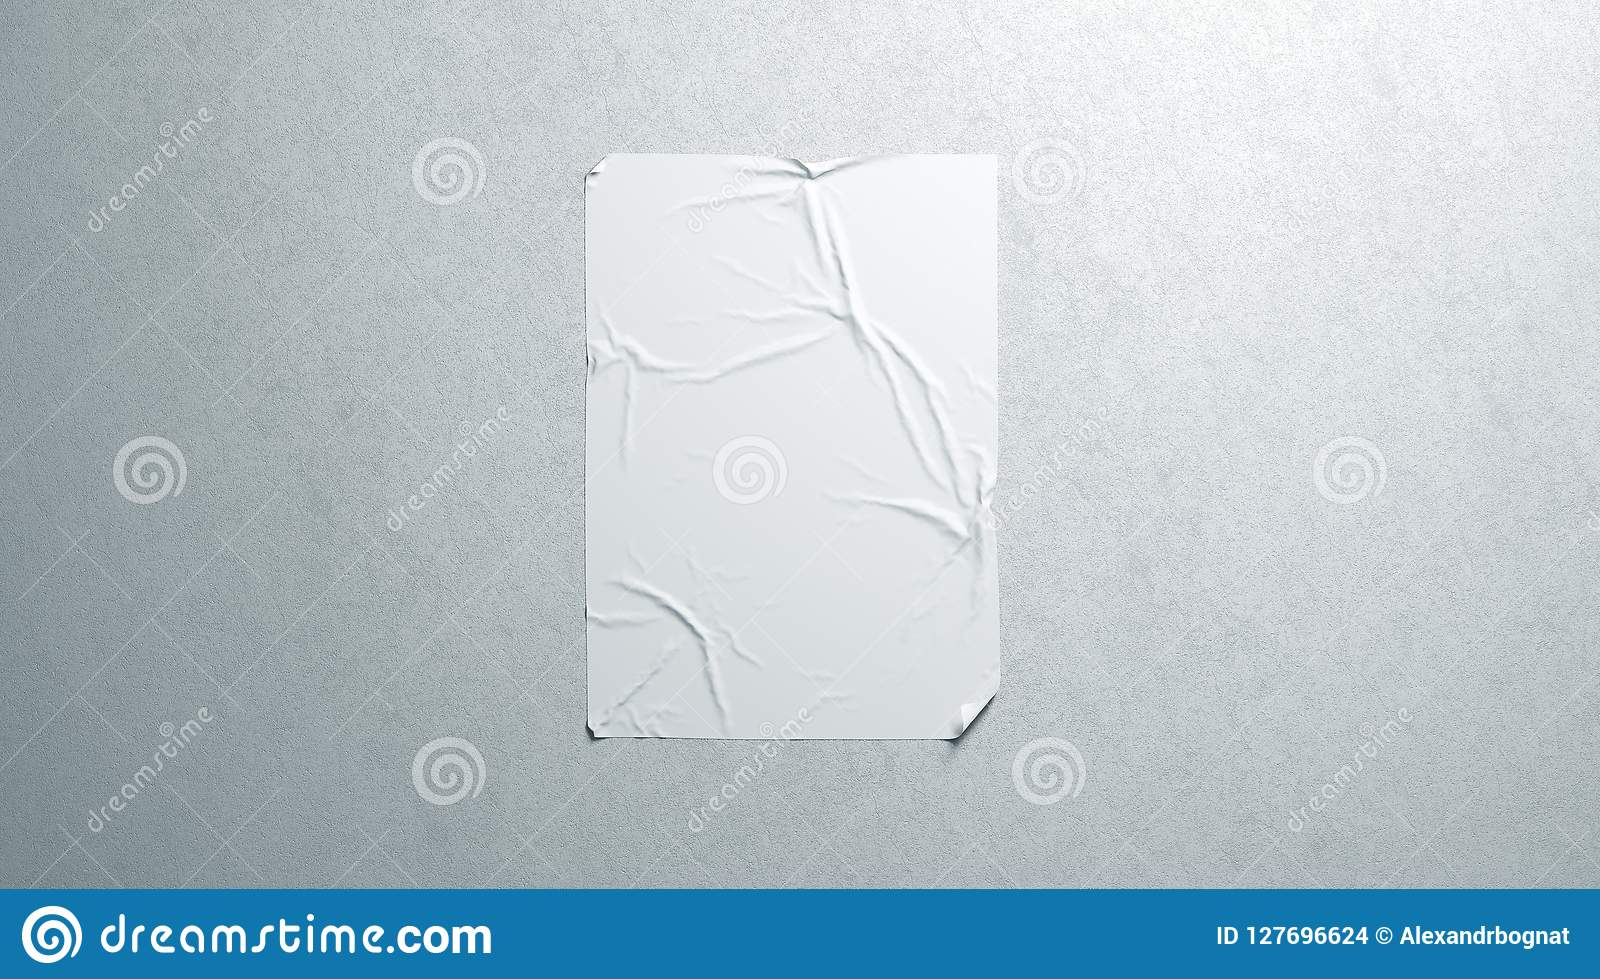 Blank white wheatpaste adhesive poster mockup on textured wall